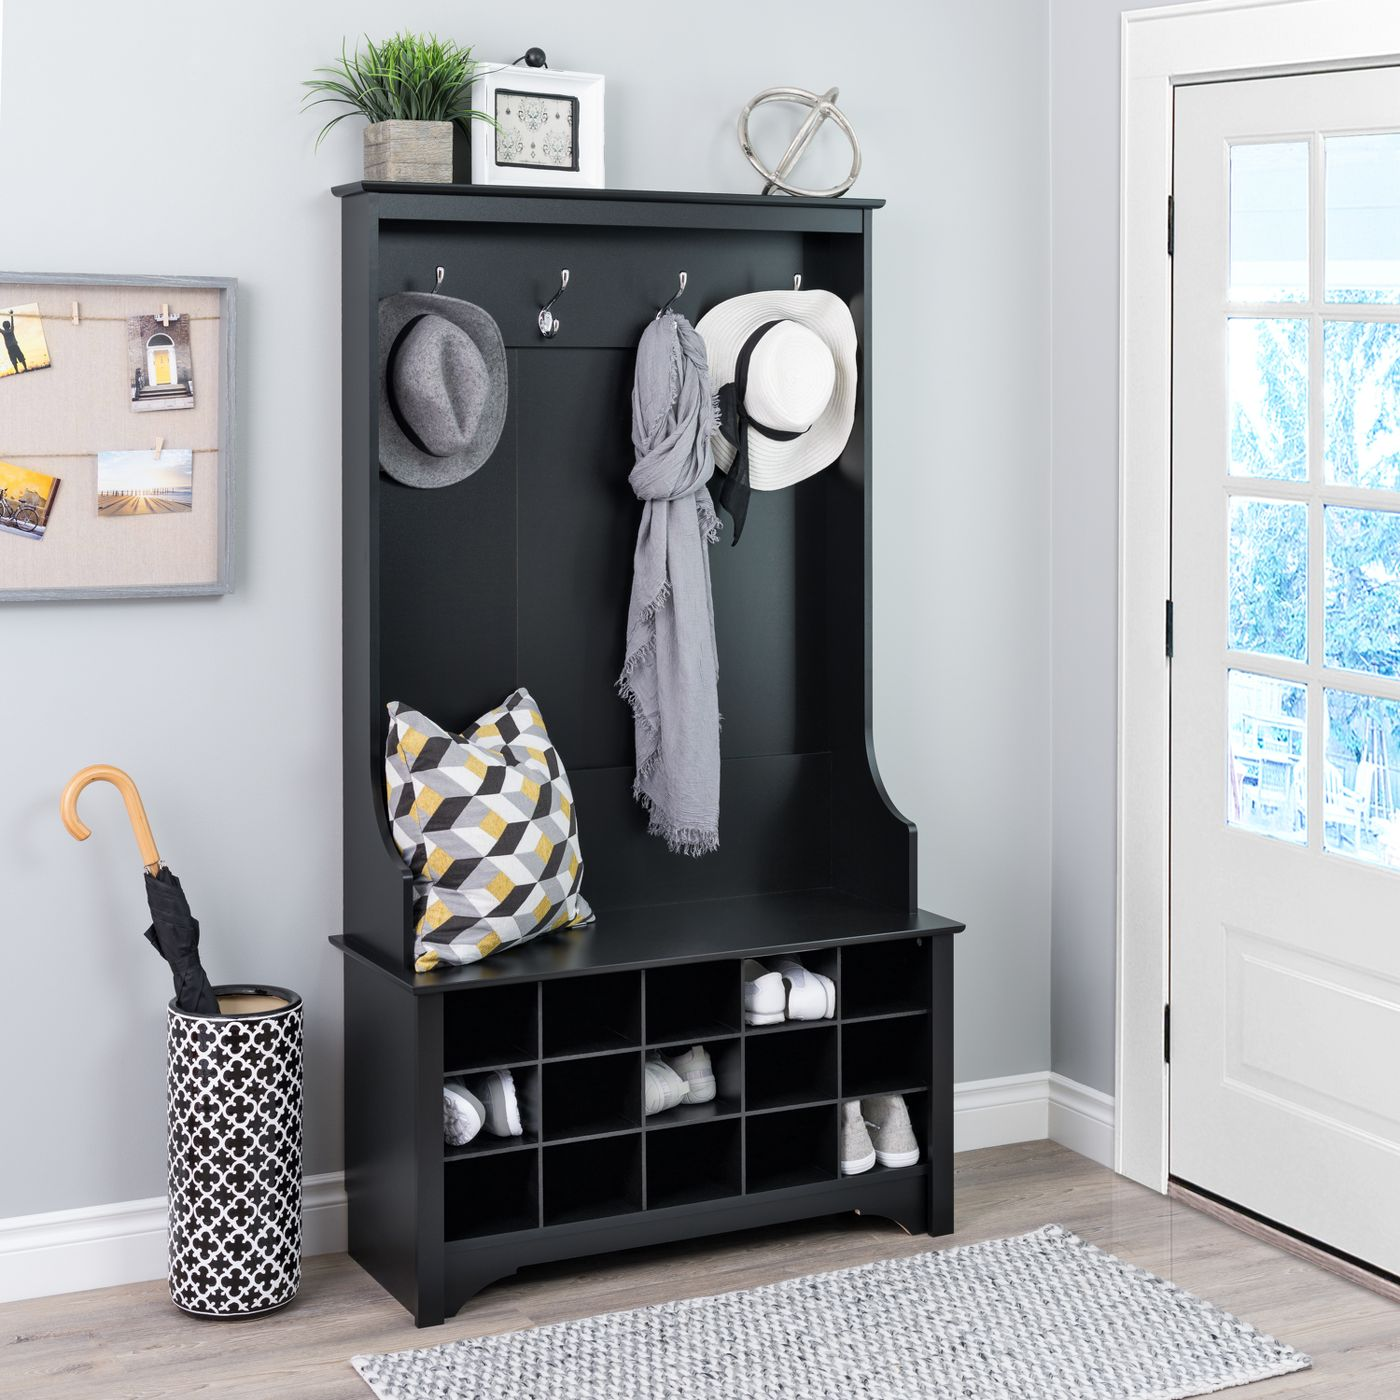 Who said mudrooms can't be stylish? With this sophisticated storage-saver, you can fit all your possessions in one place, from shoes all the way to coats.BUY IT: $155.99; target.com